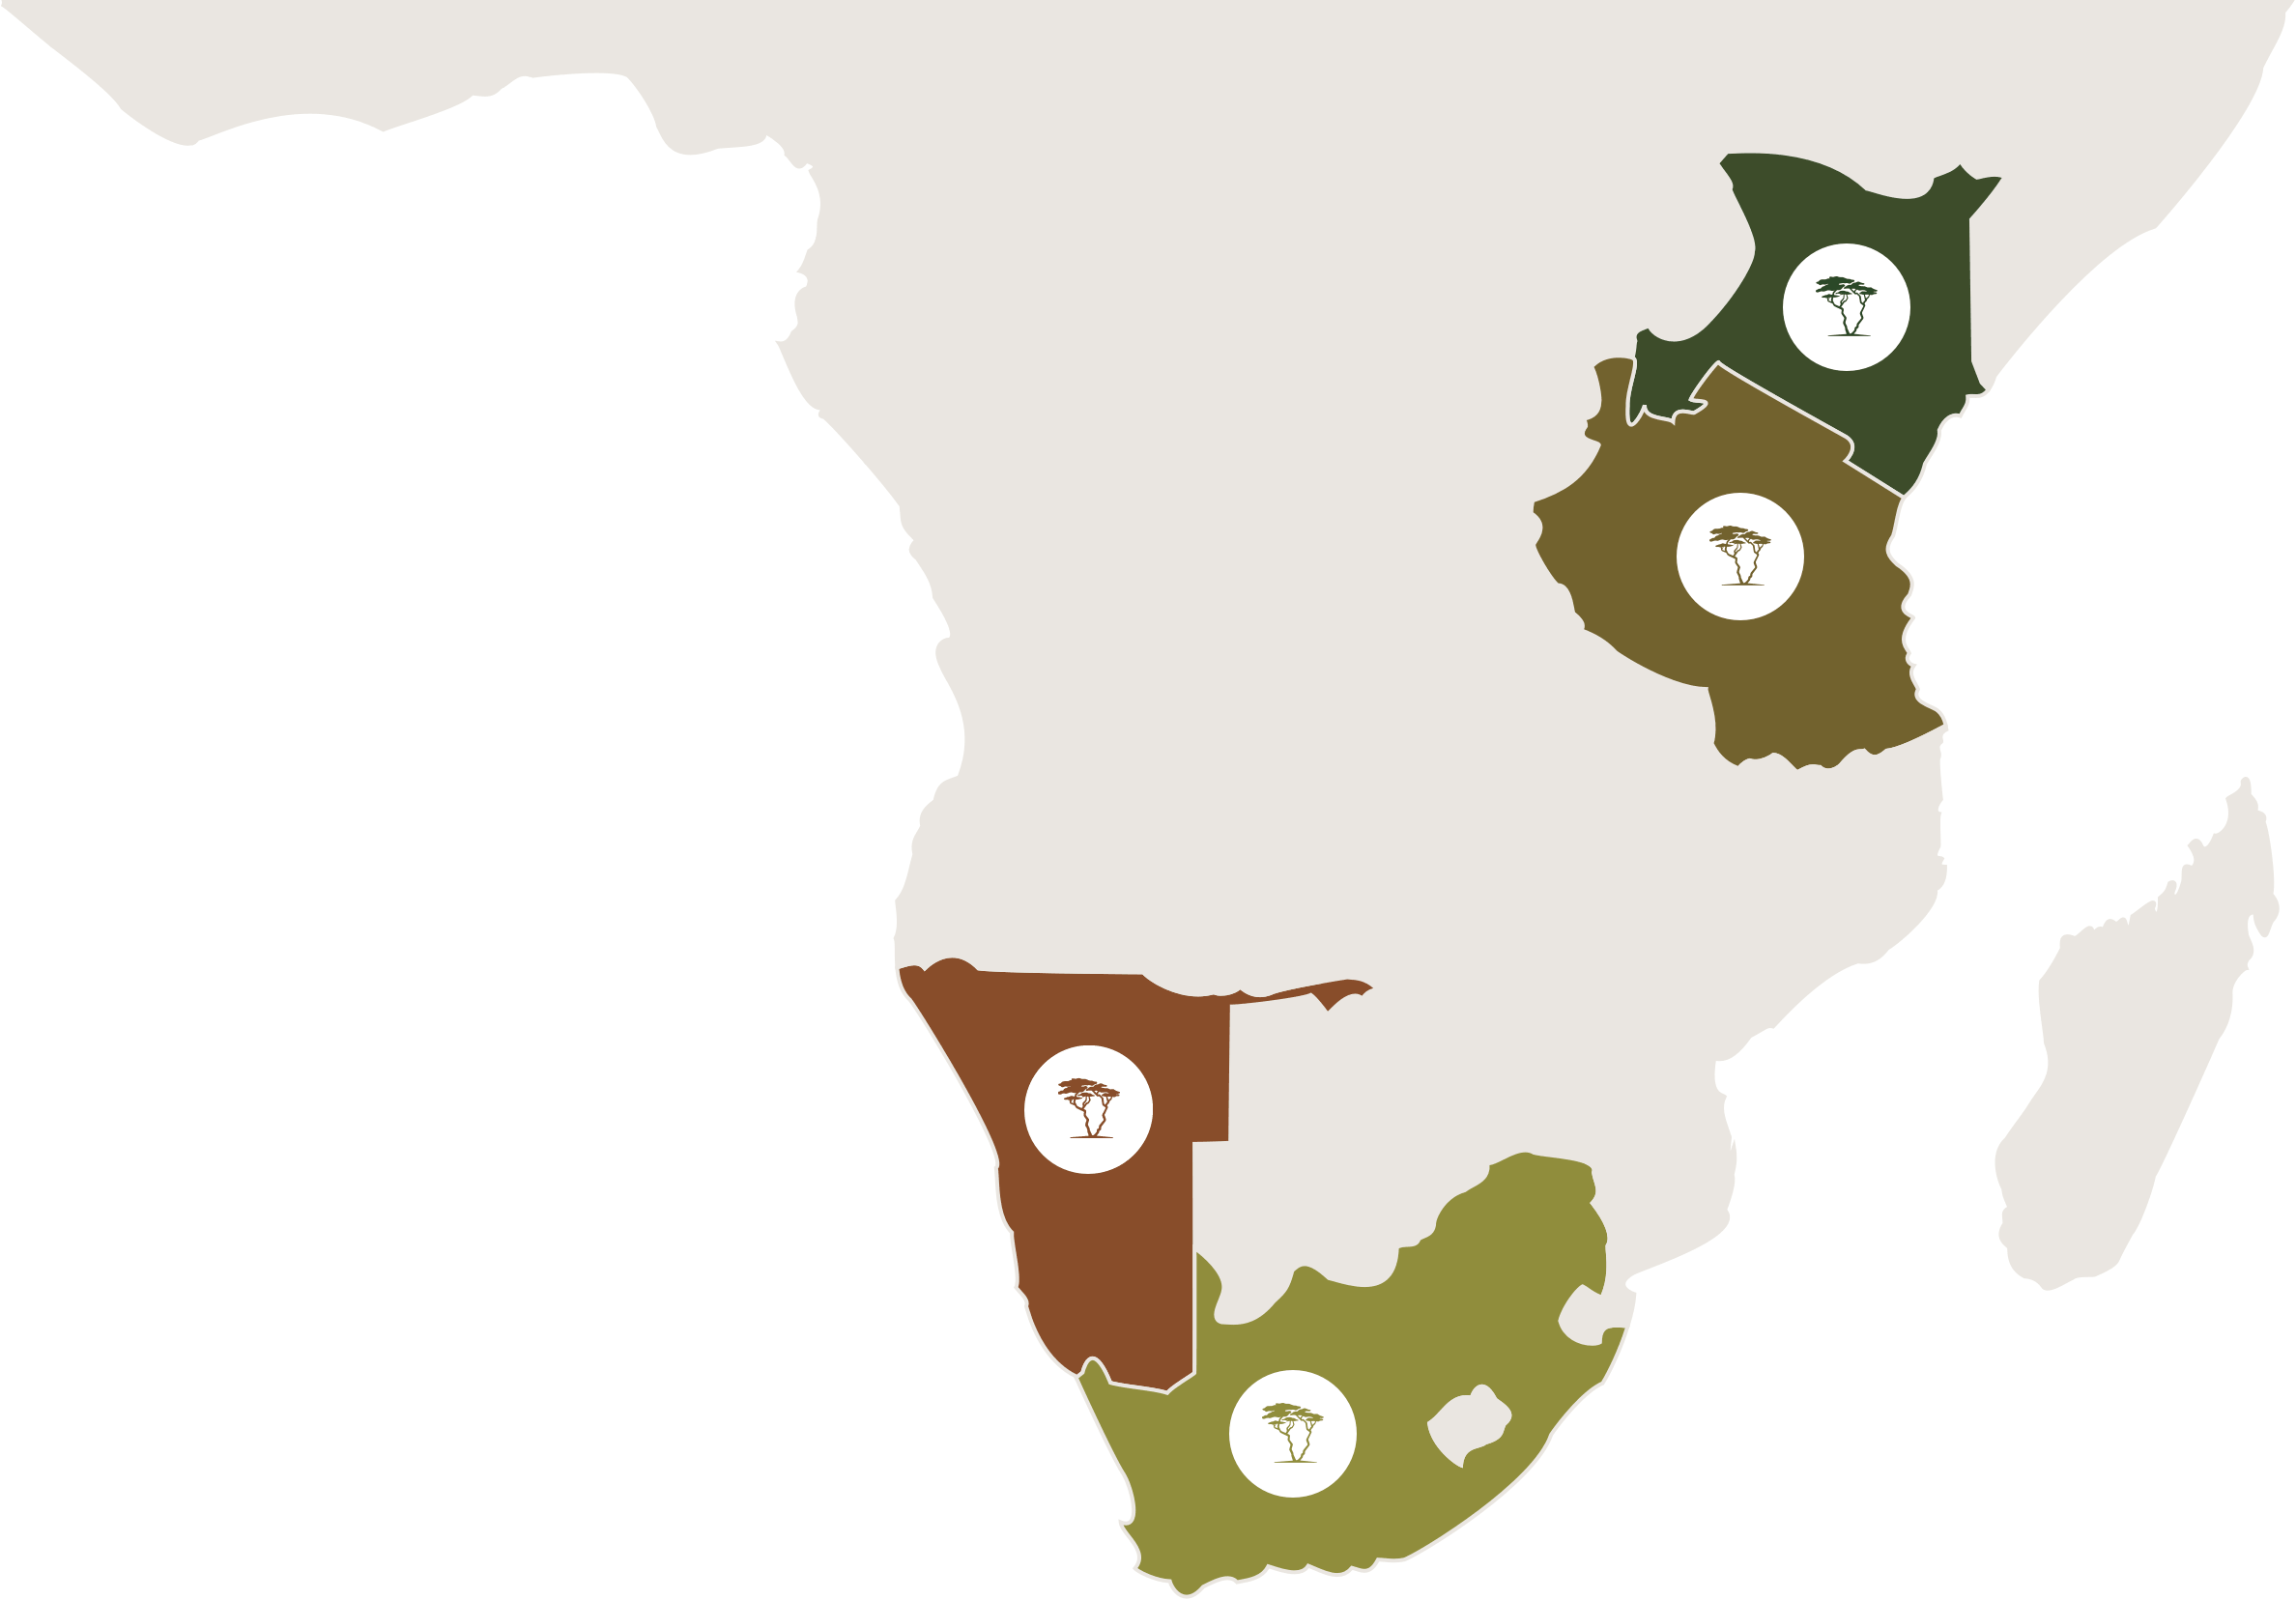 An interactive map of Africa with Africa Experience's destinations of South Africa, Namibia, Tanzania and Kenya highlighted.